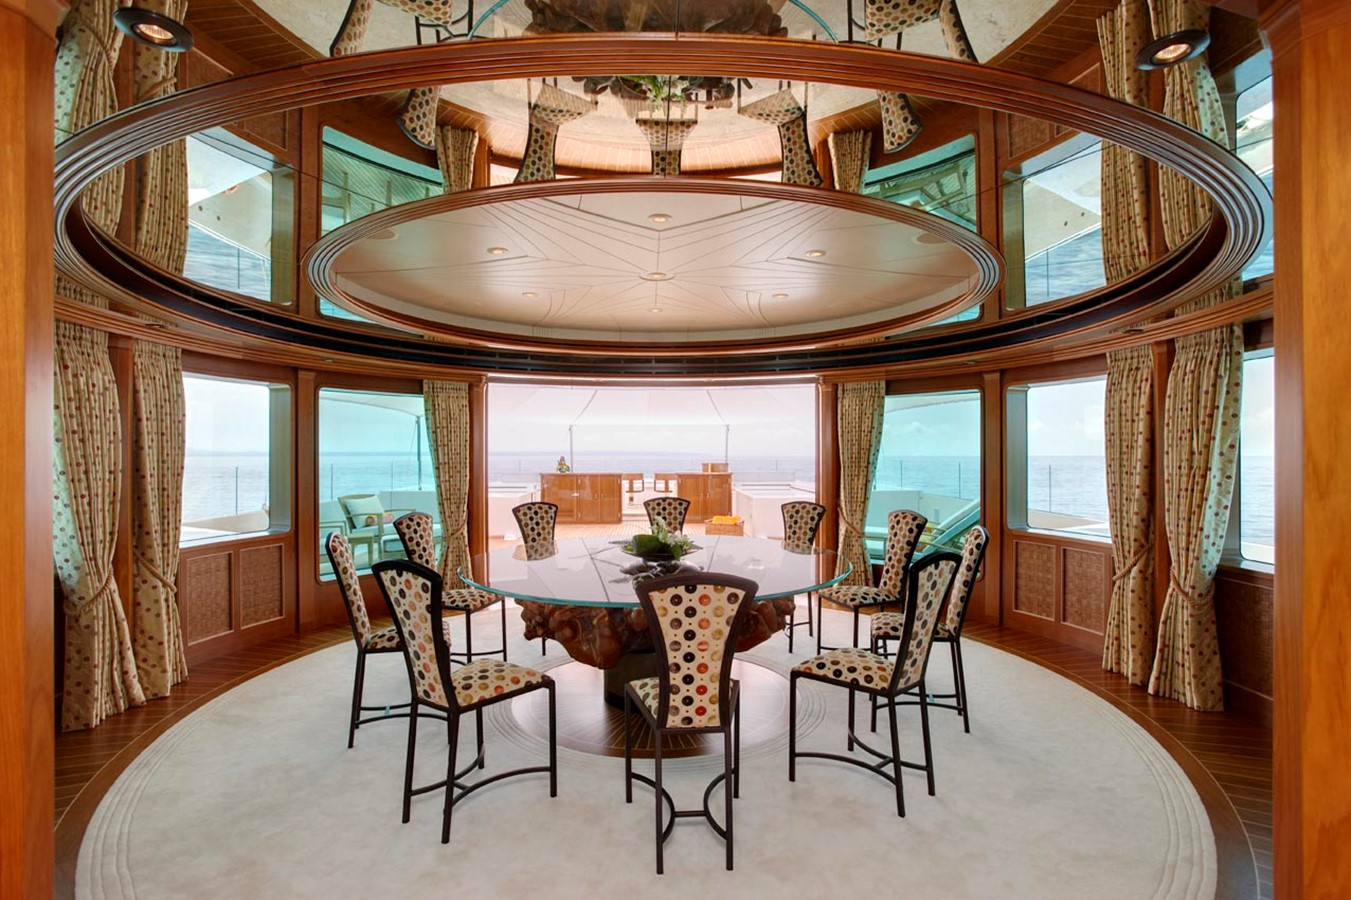 Key West Room - 223 FEADSHIP For Sale